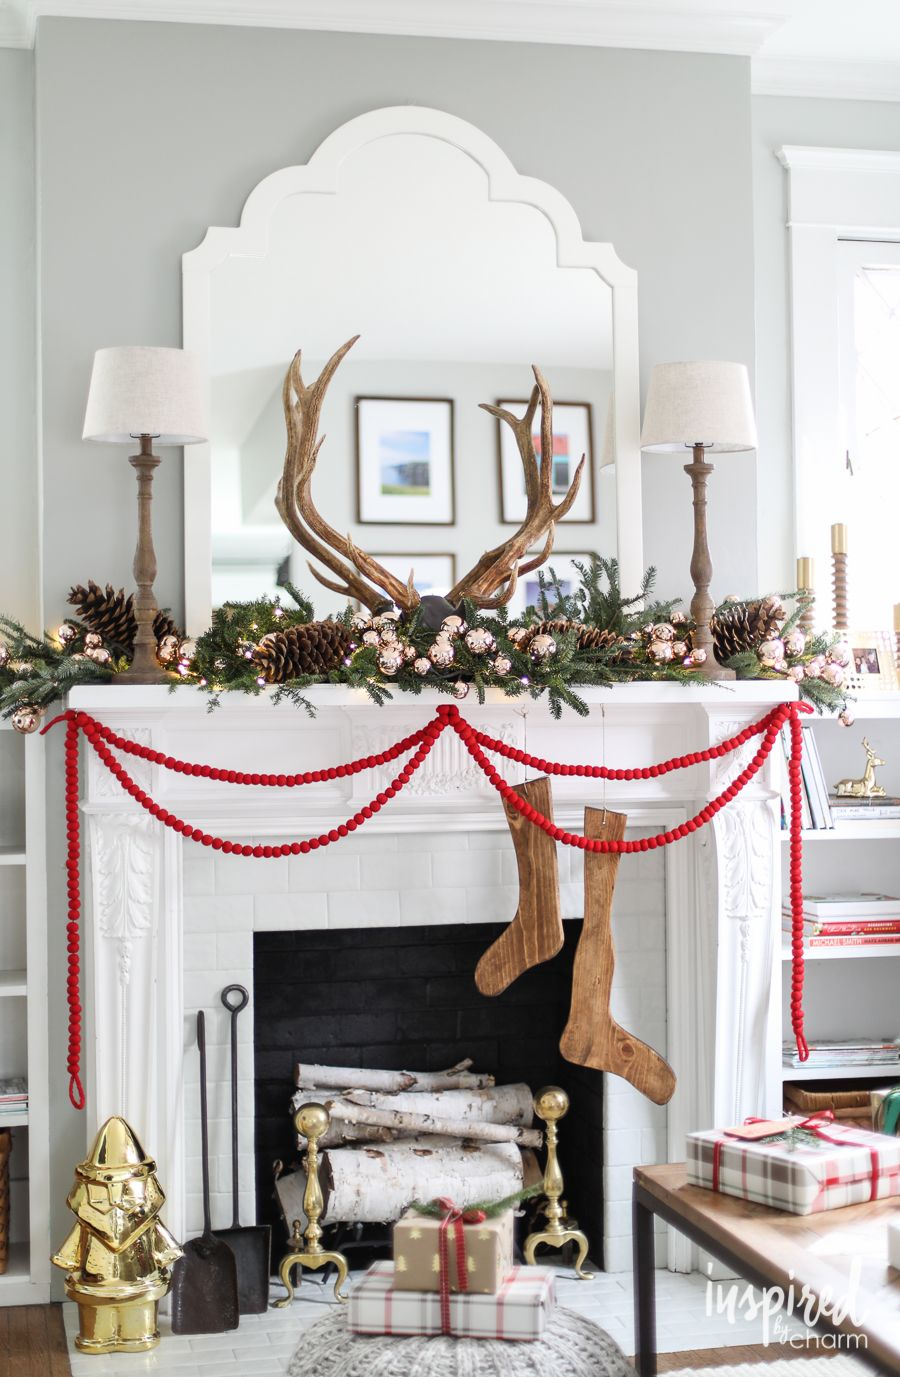 50 Christmas Mantel Decorations - Ideas for Holiday Fireplace Mantel ...